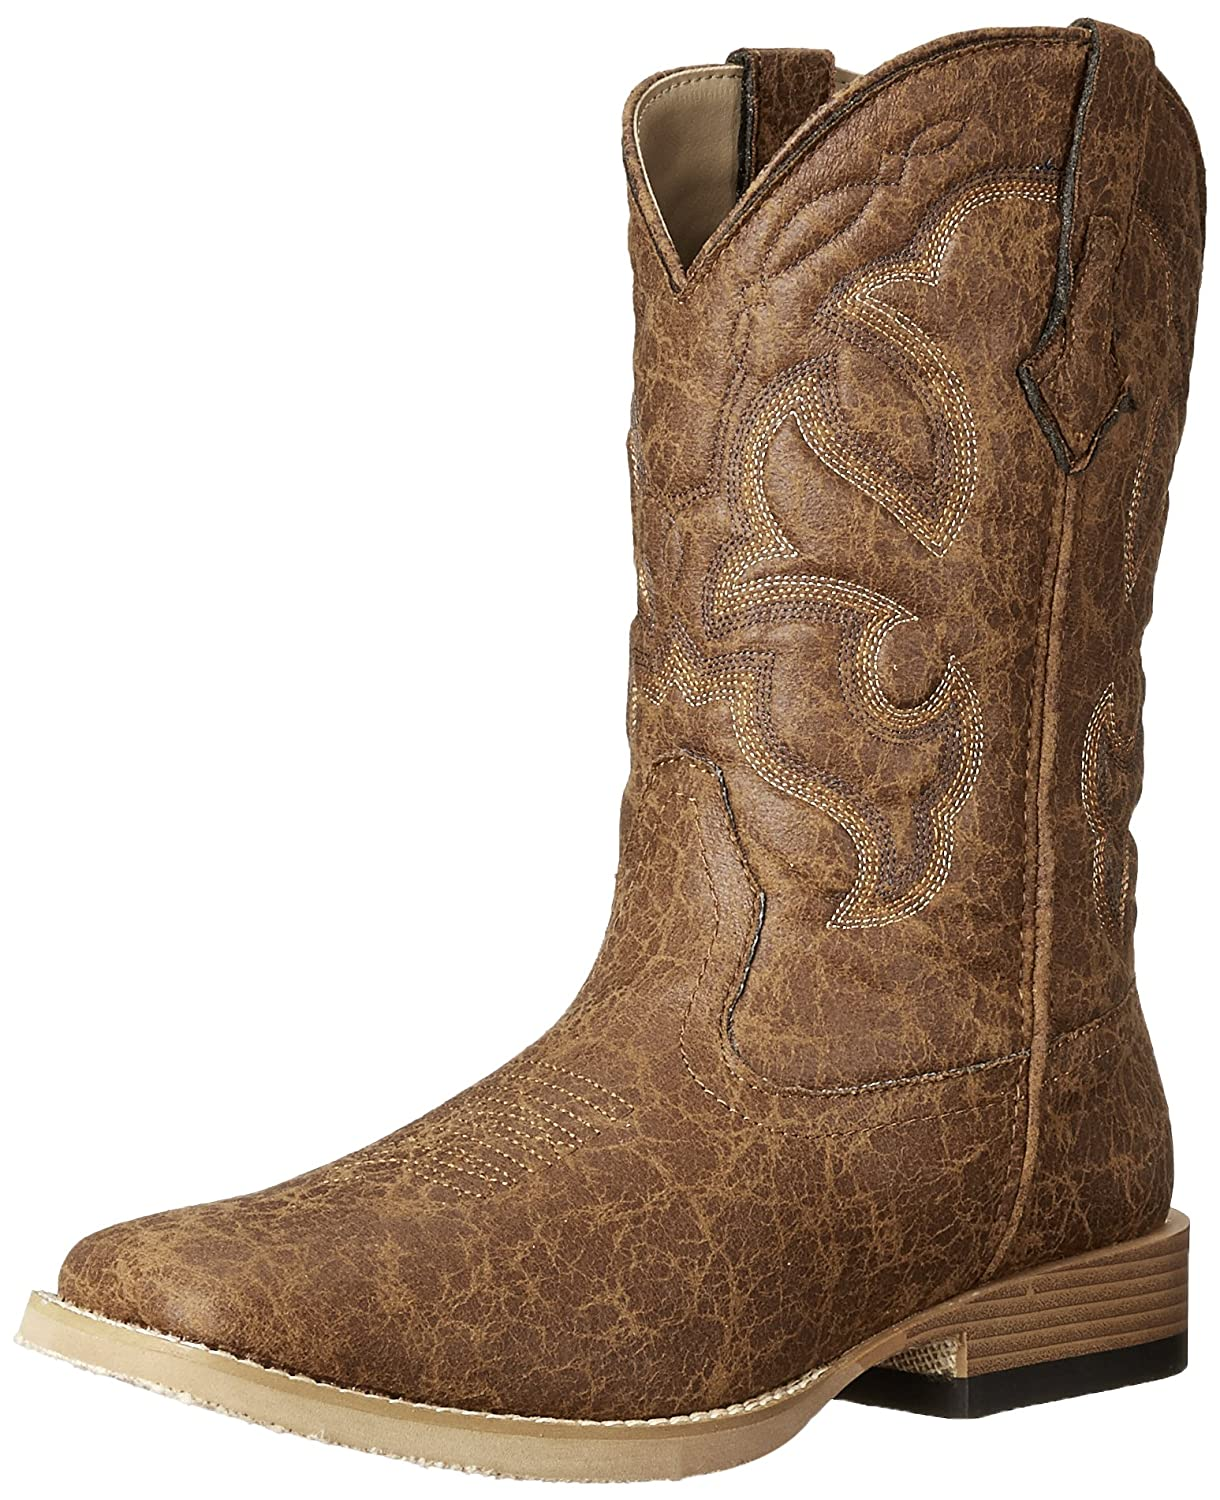 Roper Men's Vintage Square Toe Western Boot